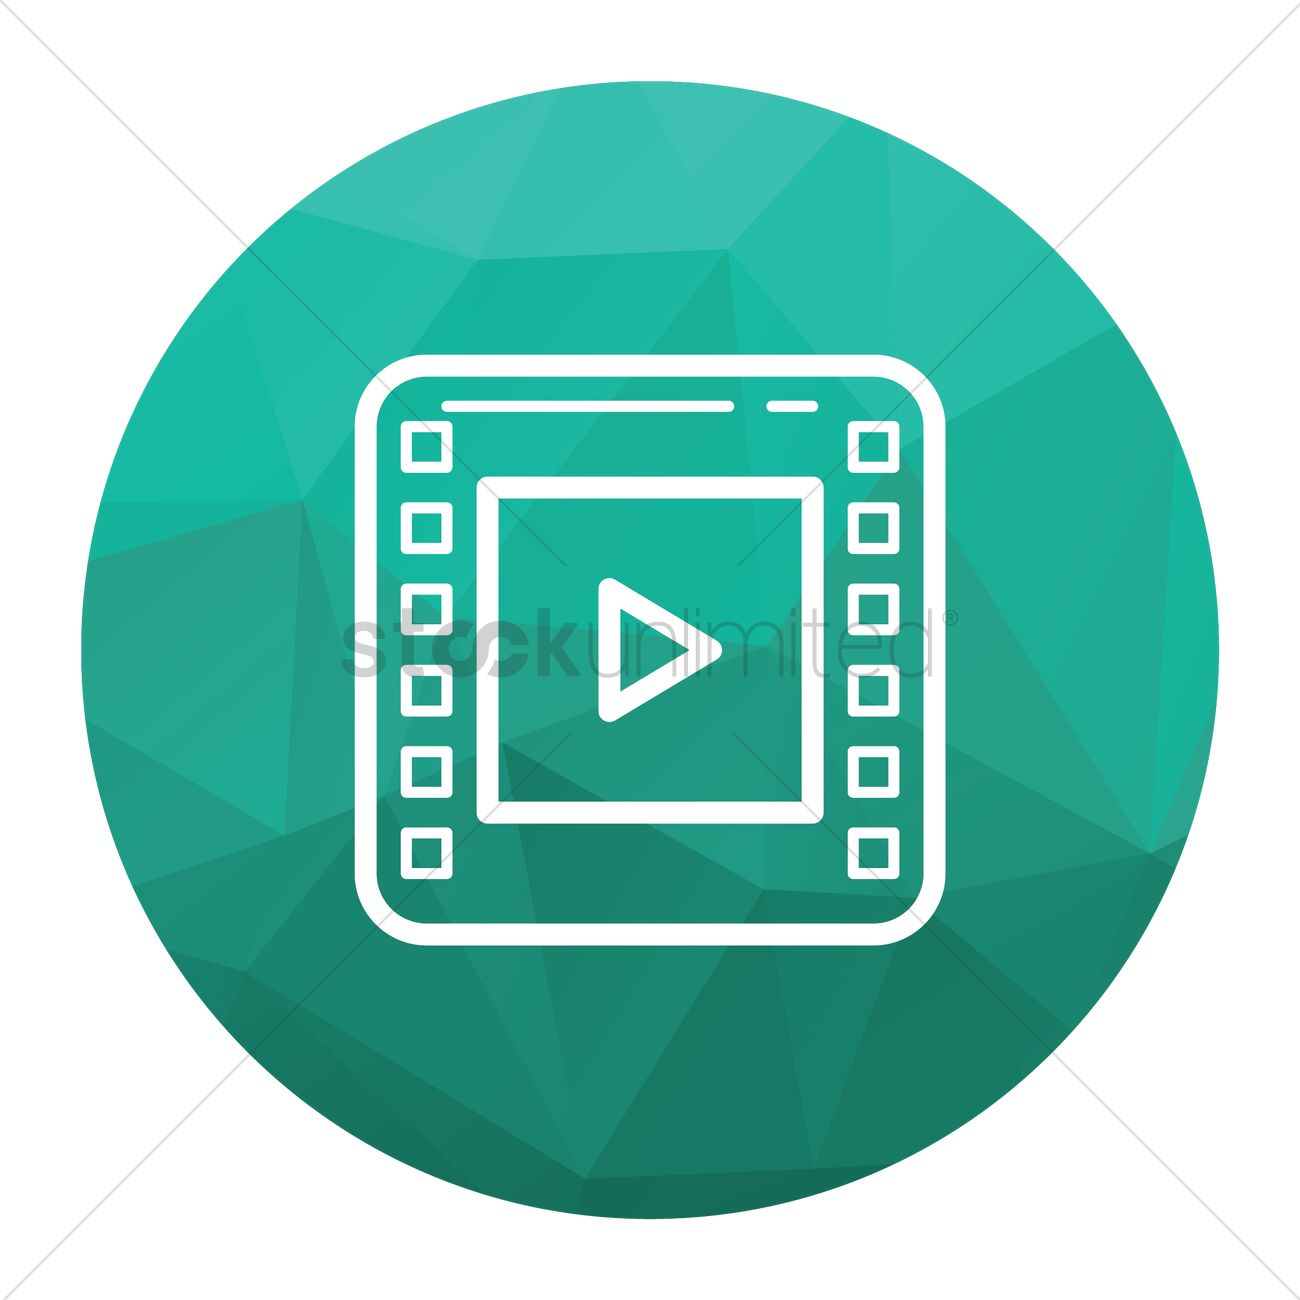 Video player icon Vector Image - 1814421 | StockUnlimited